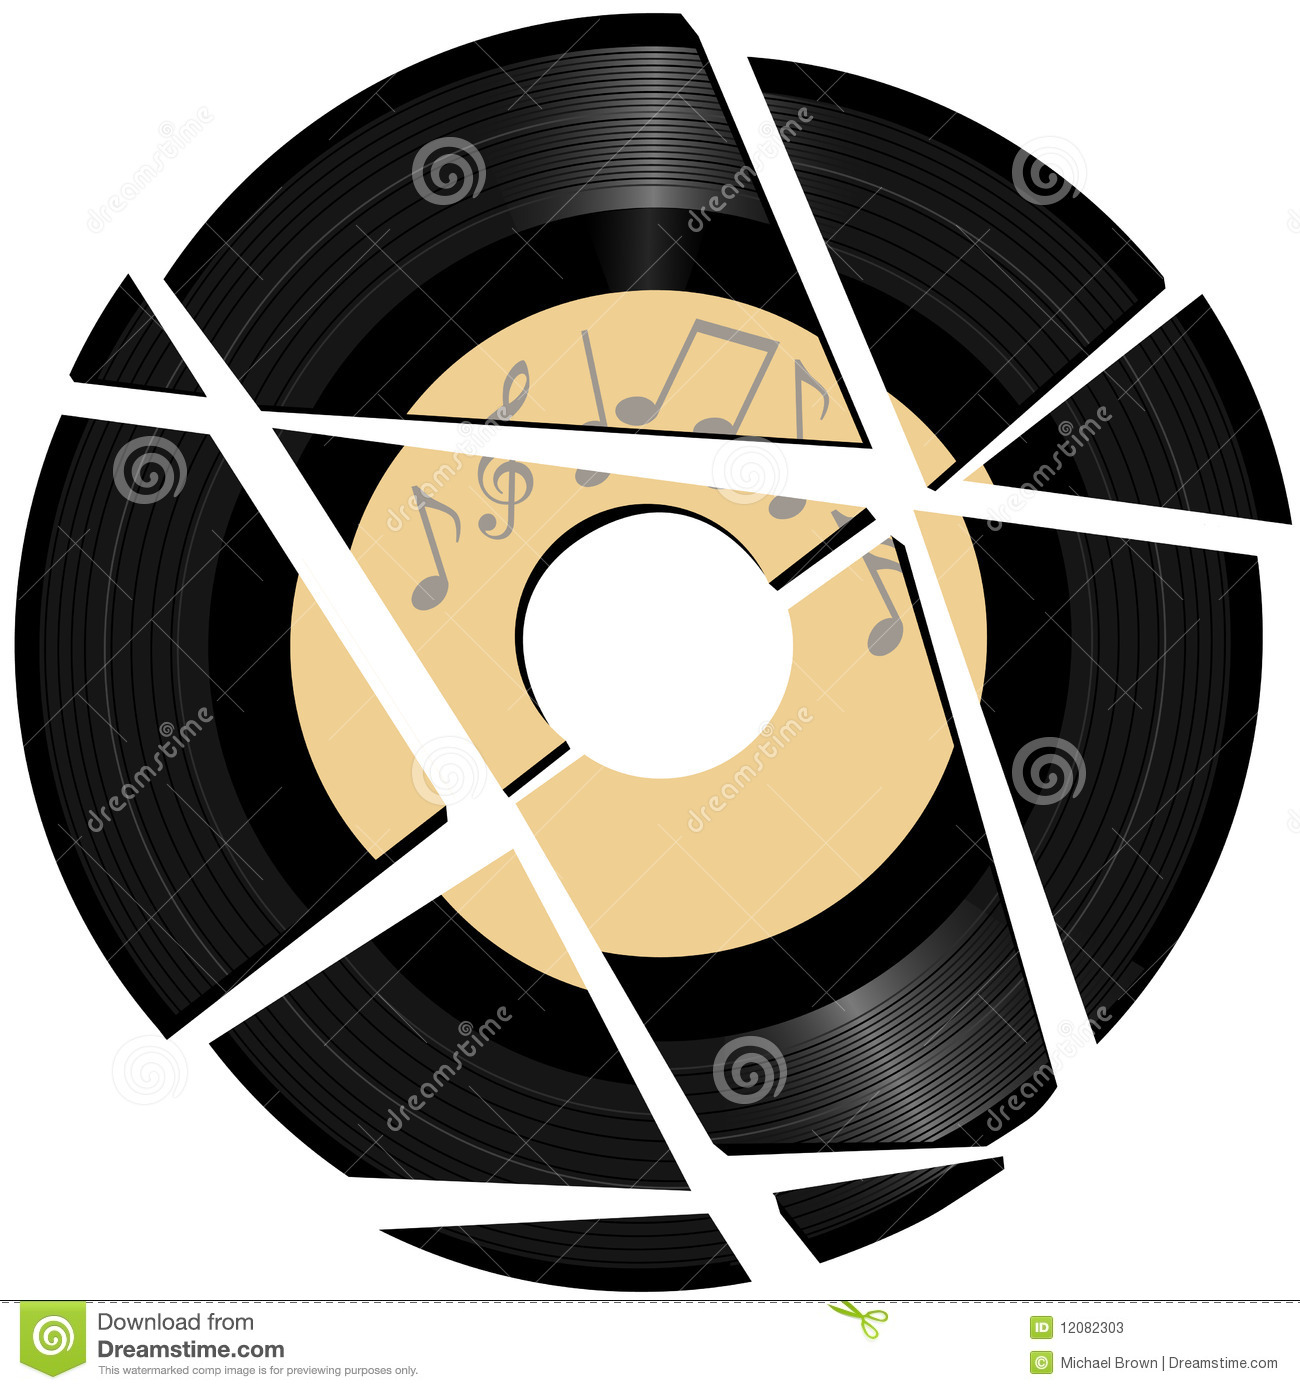 Broken Vinyl Record With Music Label Stock Vector - Illustration of ...